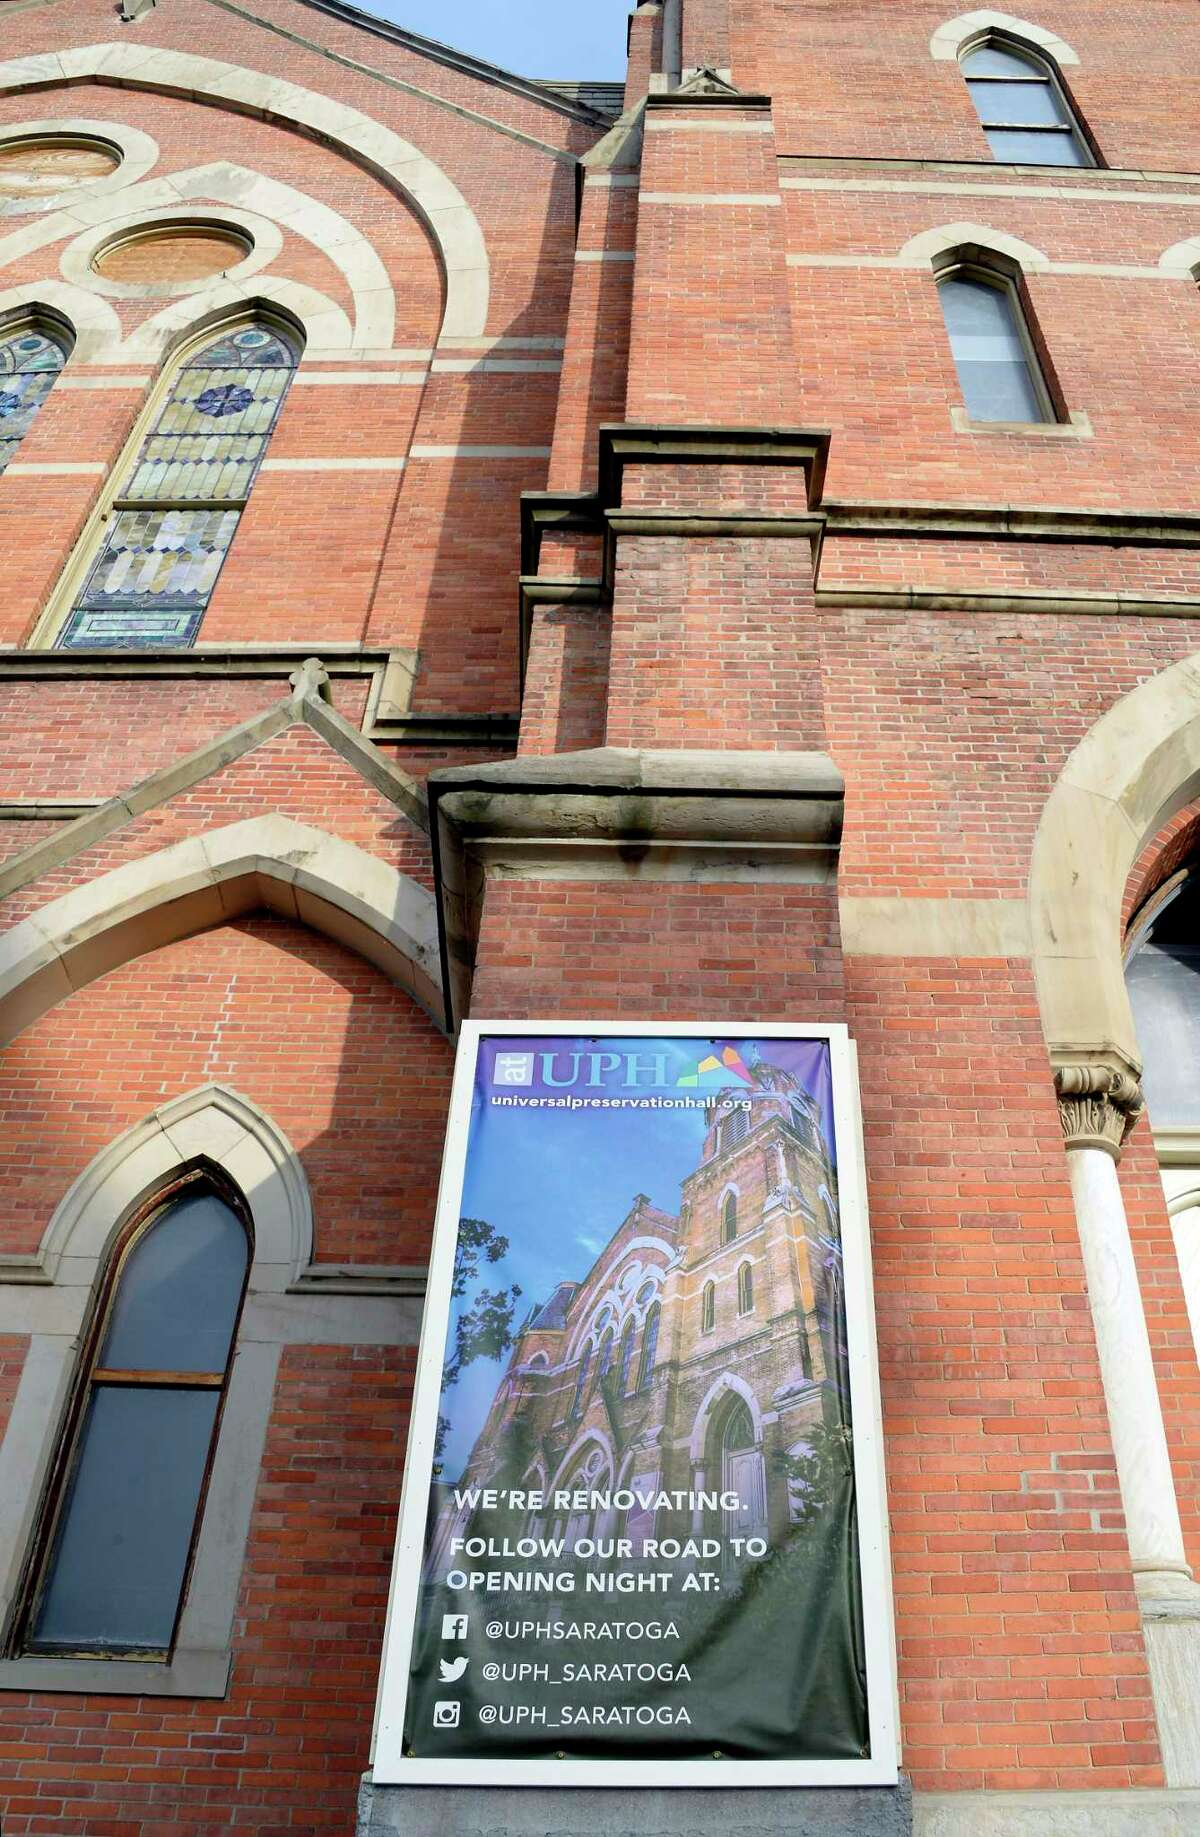 The public phase of the Universal Preservation Hall campaign is announced Thursday Dec. 6, 2018 in Saratoga Springs, NY. (John Carl D'Annibale/Times Union)